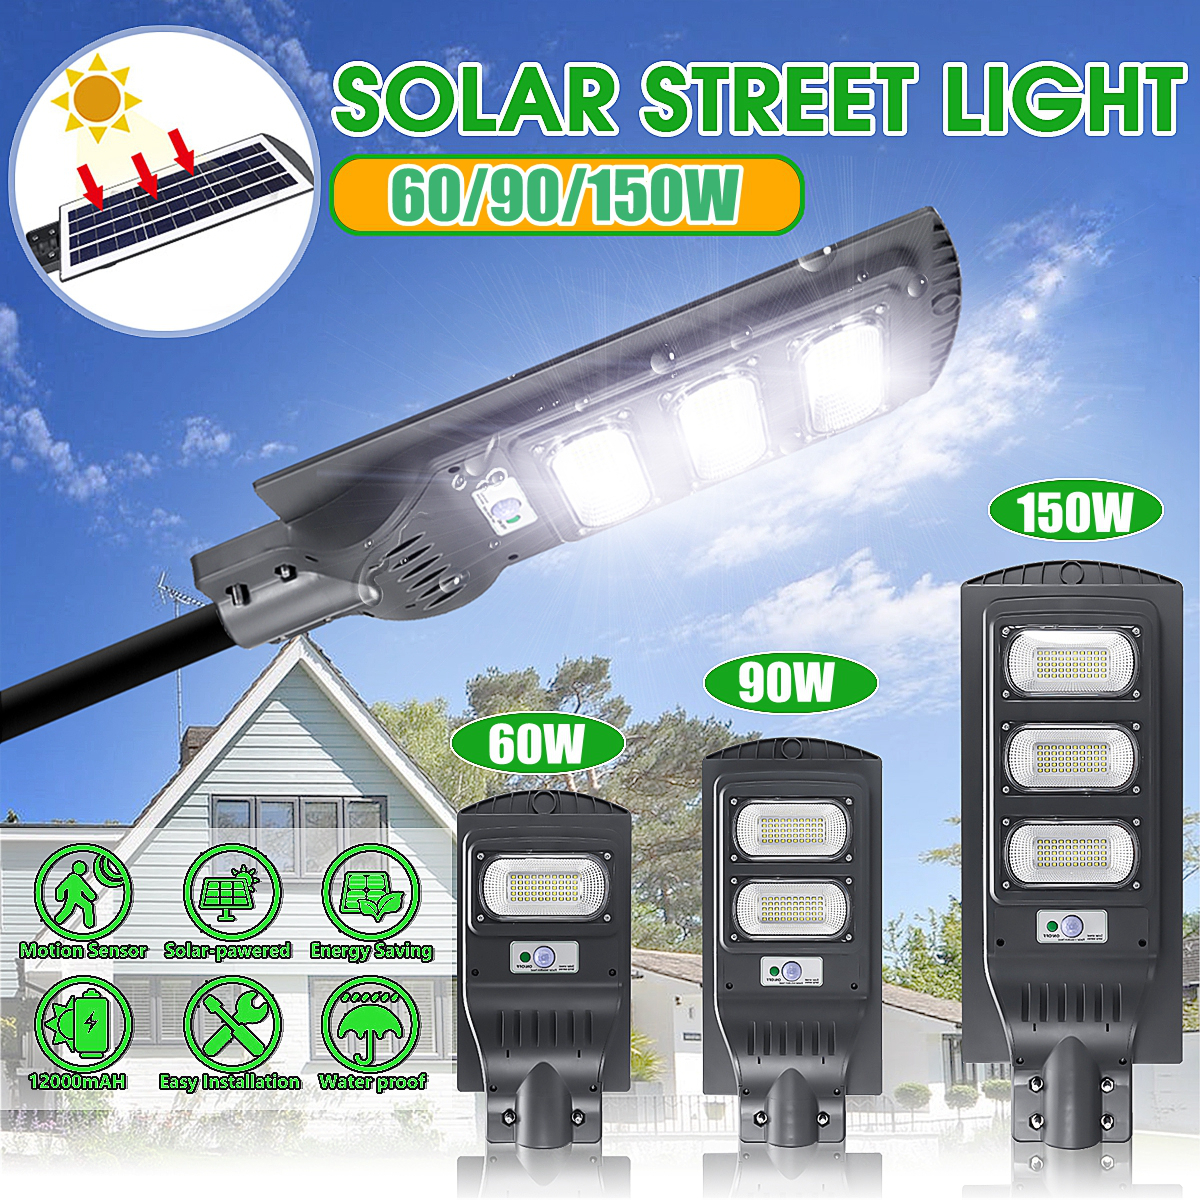 LED Solar Lamp Street Light 60W/90W/150W LED Solar Light Radar PIR Motion Sensor Timing Lamp+Remote Waterproof for Plaza Garden 1